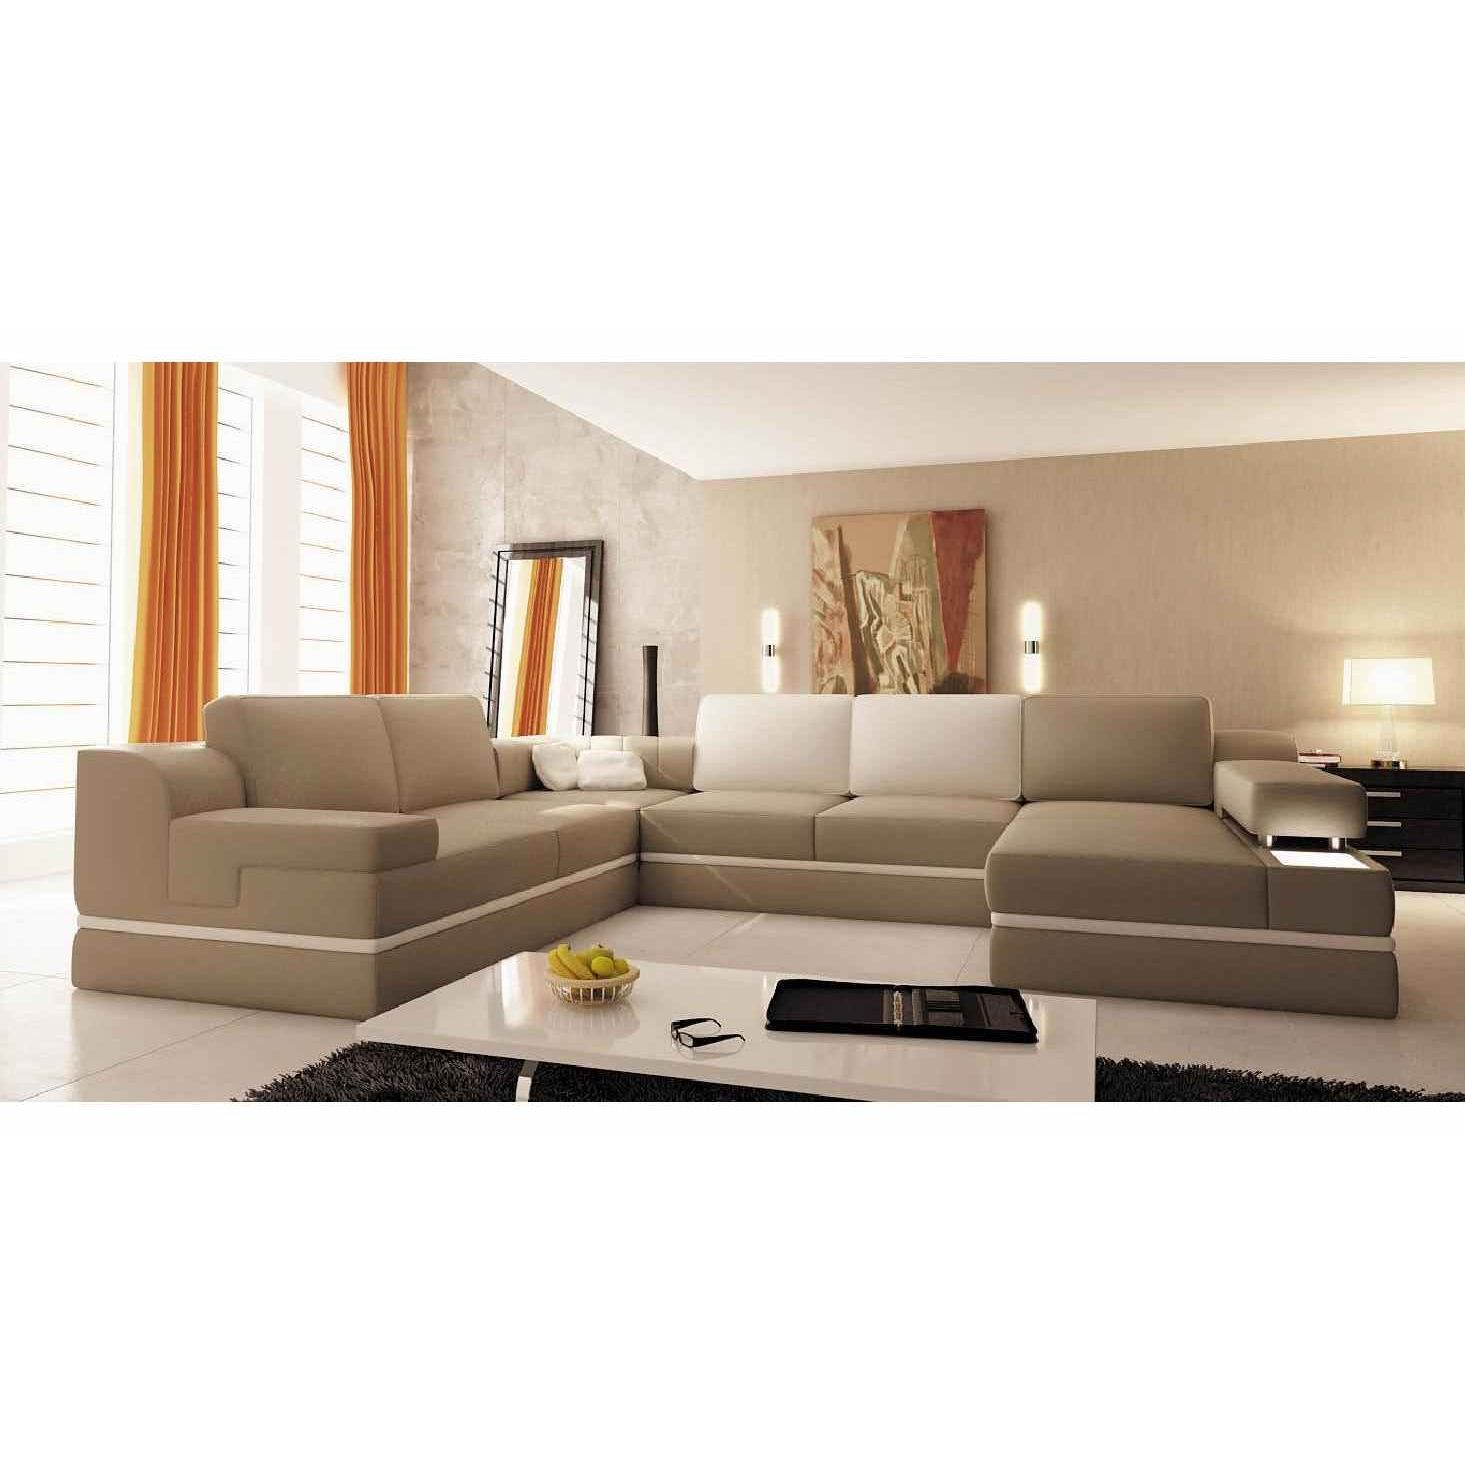 deco in paris canape panoramique cuir beige et blanc madrid can angledroit pu venise beige blanc. Black Bedroom Furniture Sets. Home Design Ideas